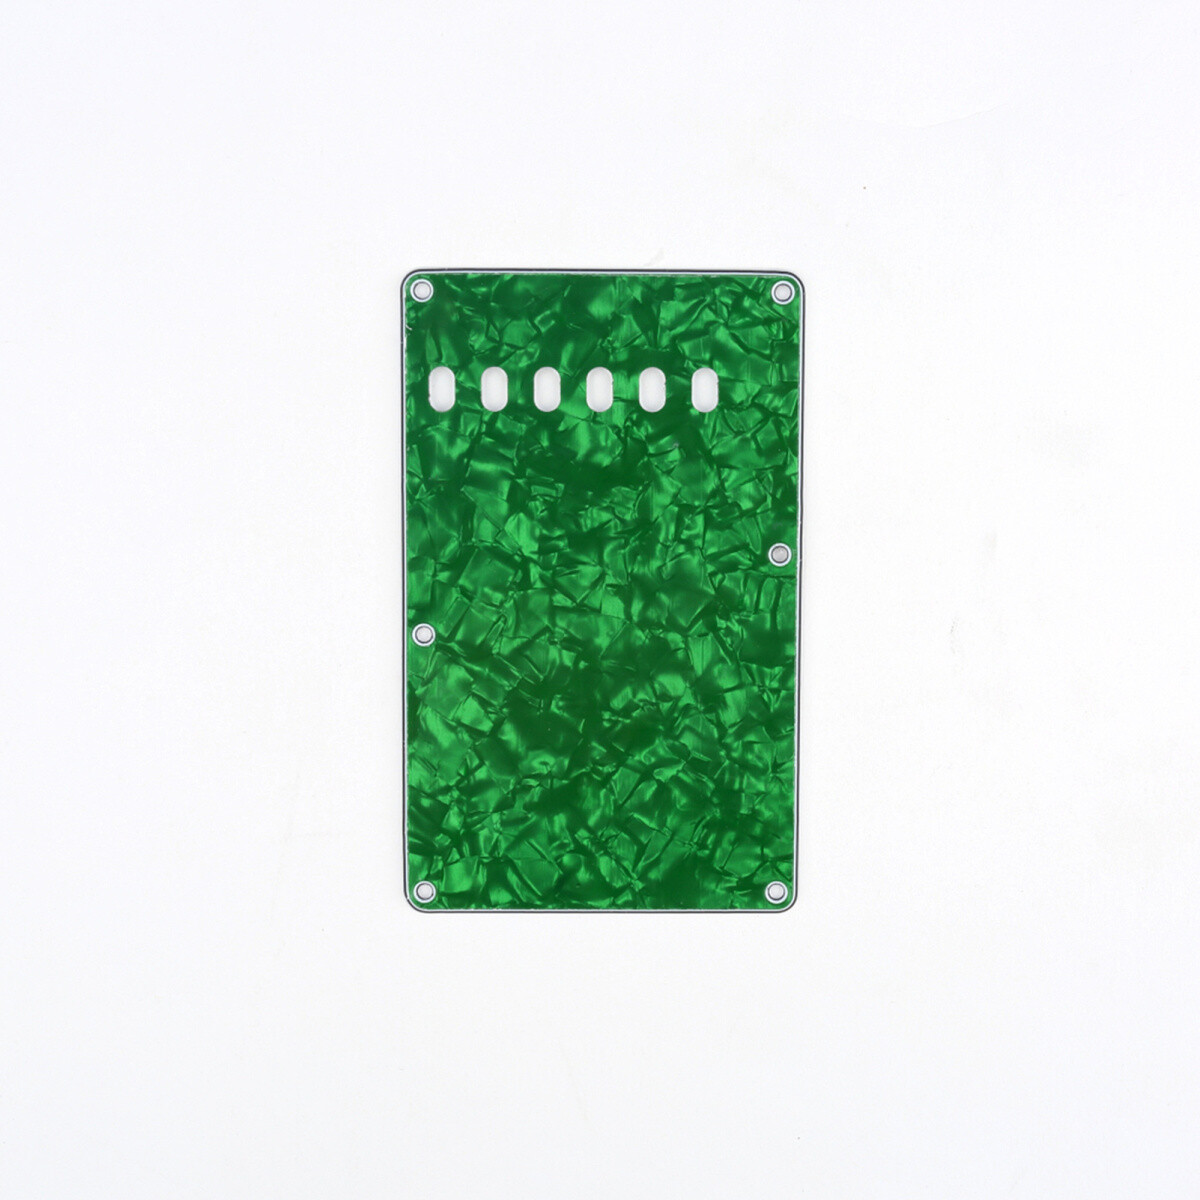 Brio Pearl Green Vintage Style Back Plate Tremolo Cover 4 ply - US/Mexican Fender®Strat® Fit